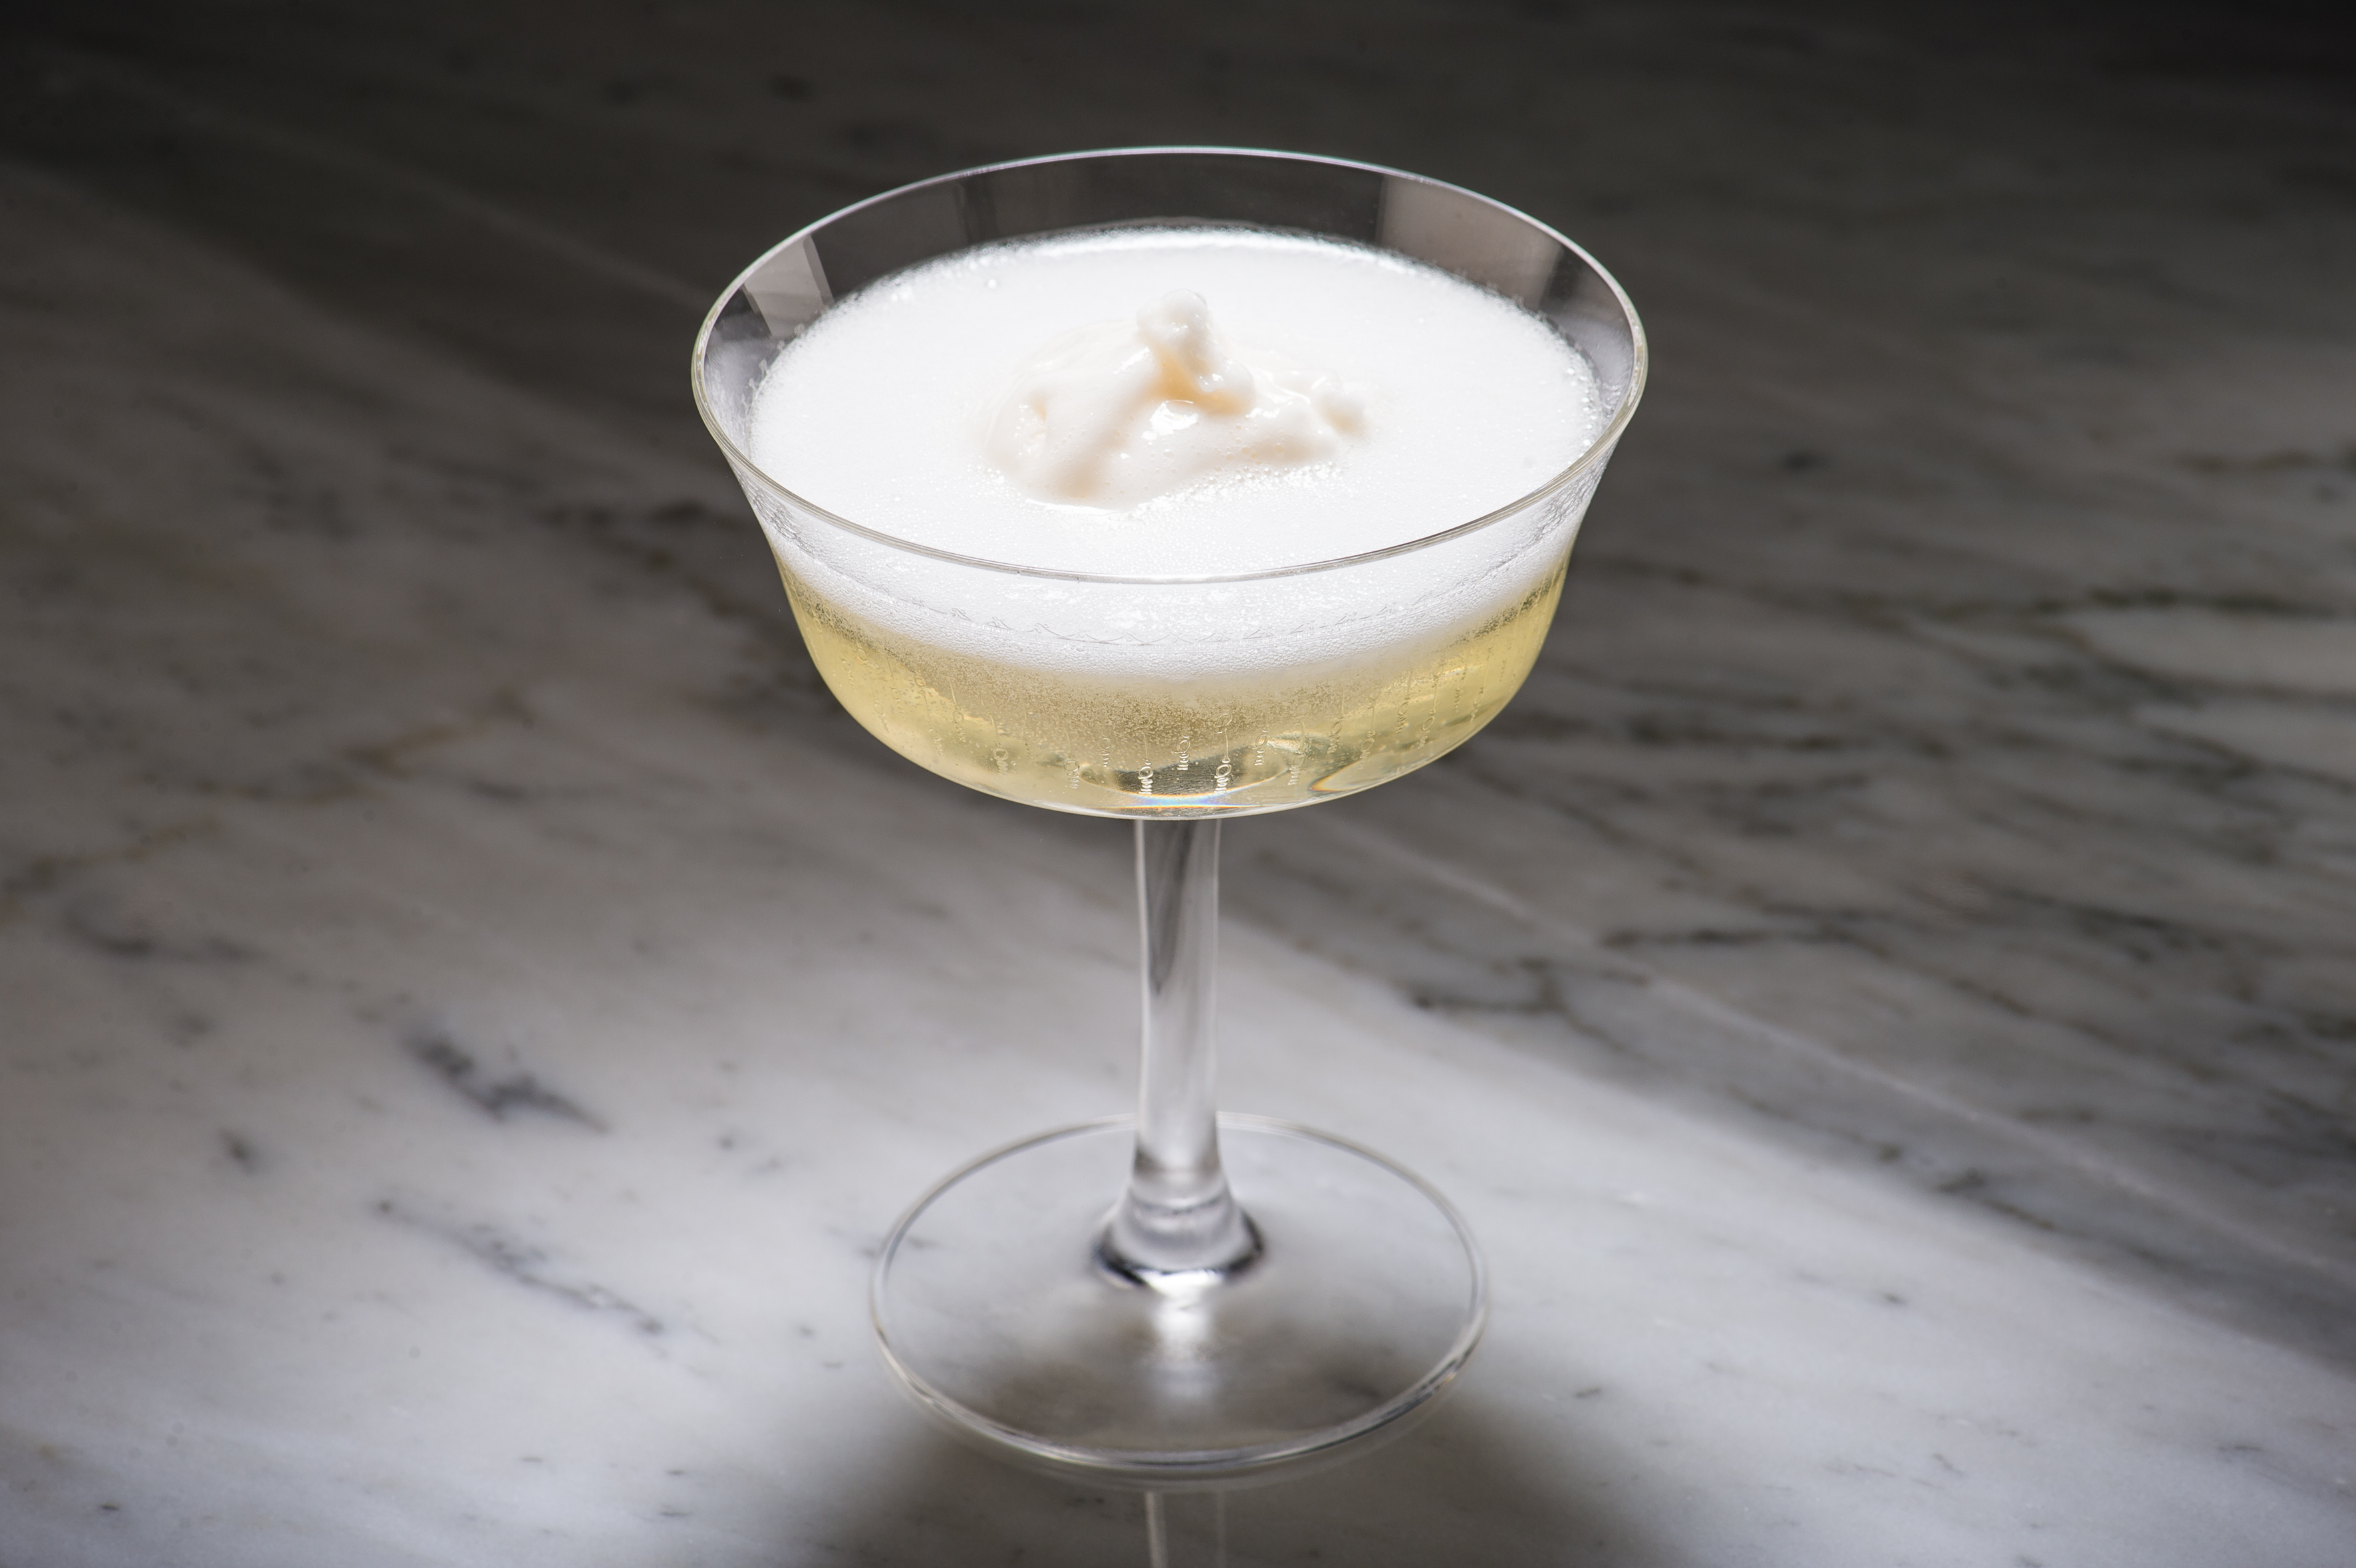 A sgroppino cocktail at Swift Shoreditch, served in a coupe on a marble bar